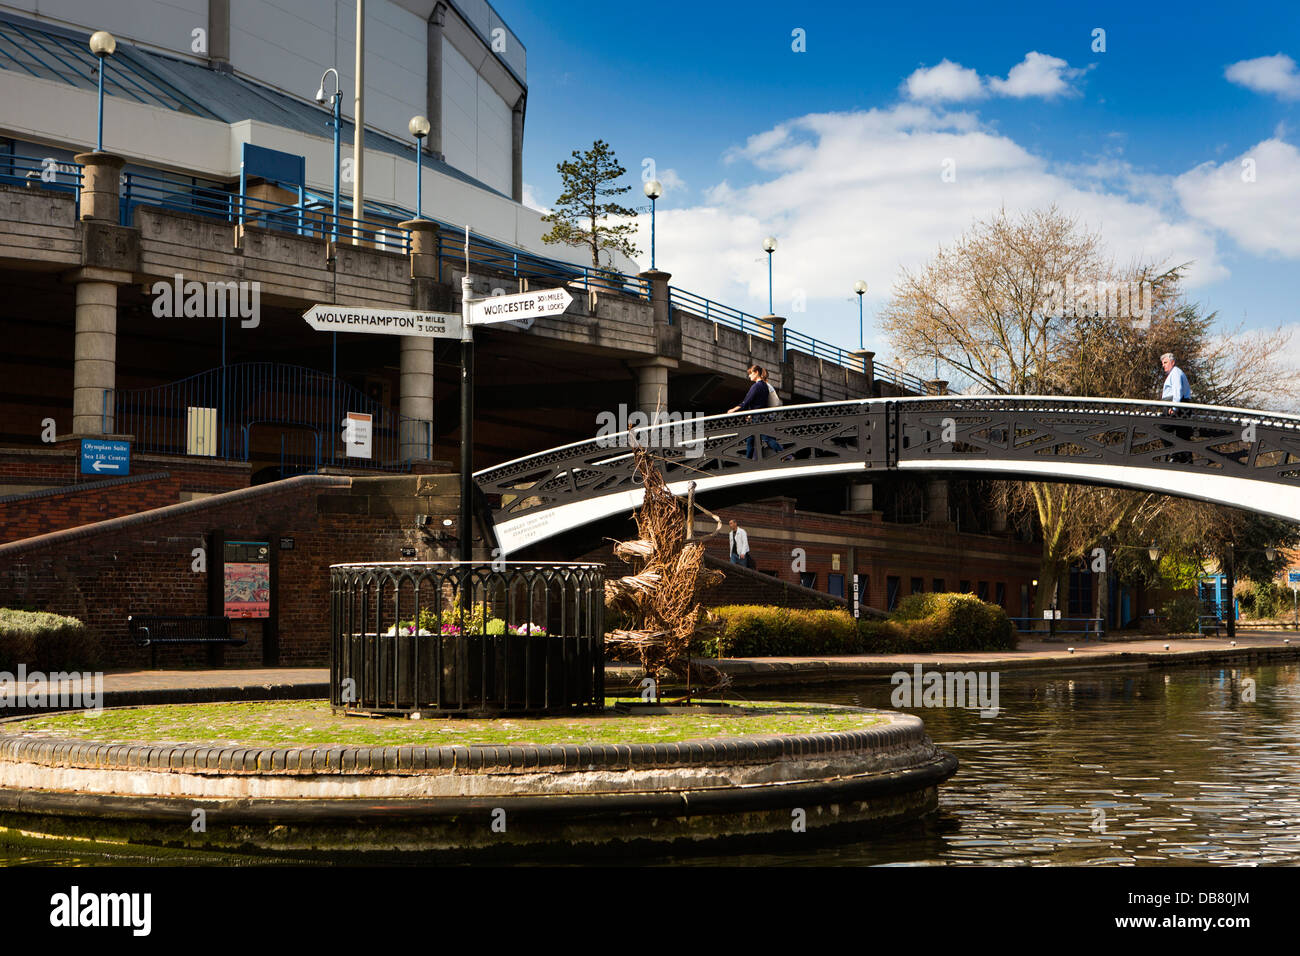 UK, England, Birmingham, Brindley Place, signbpost at junction of Canals - Stock Image